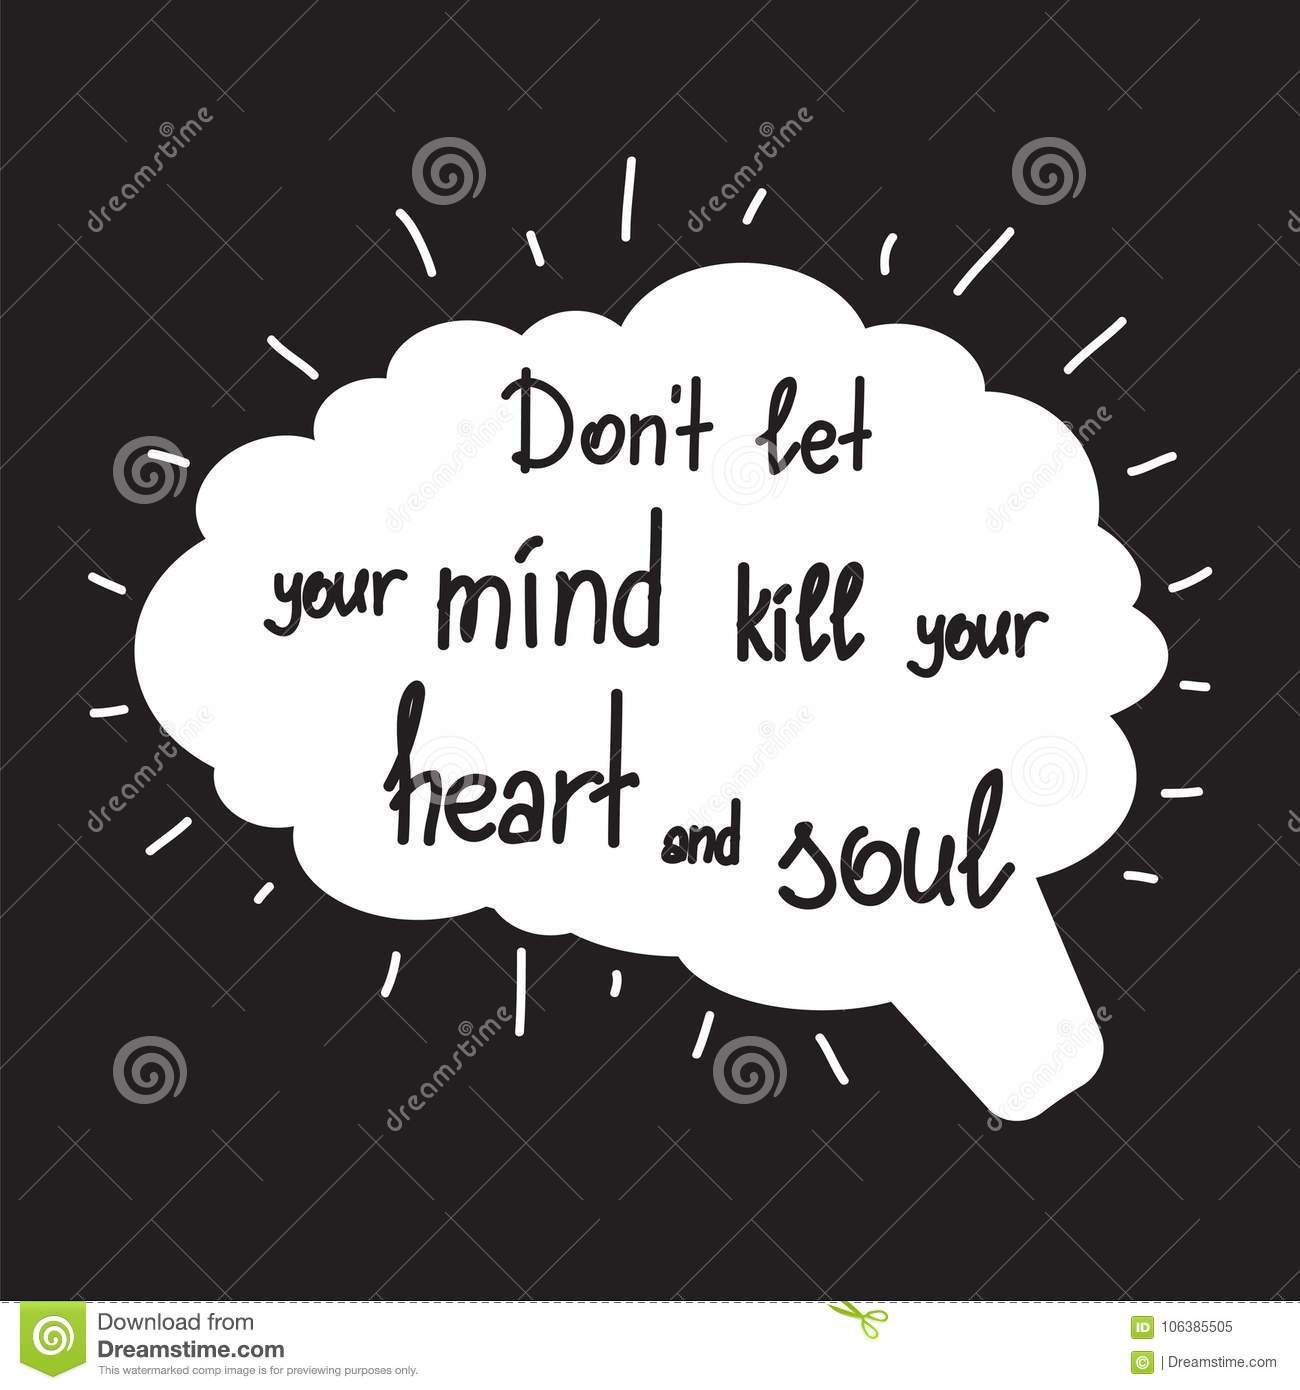 Free Your Mind Quotes Dont Let Your Mind Kill Your Heart And Soul Stock Vector  Image